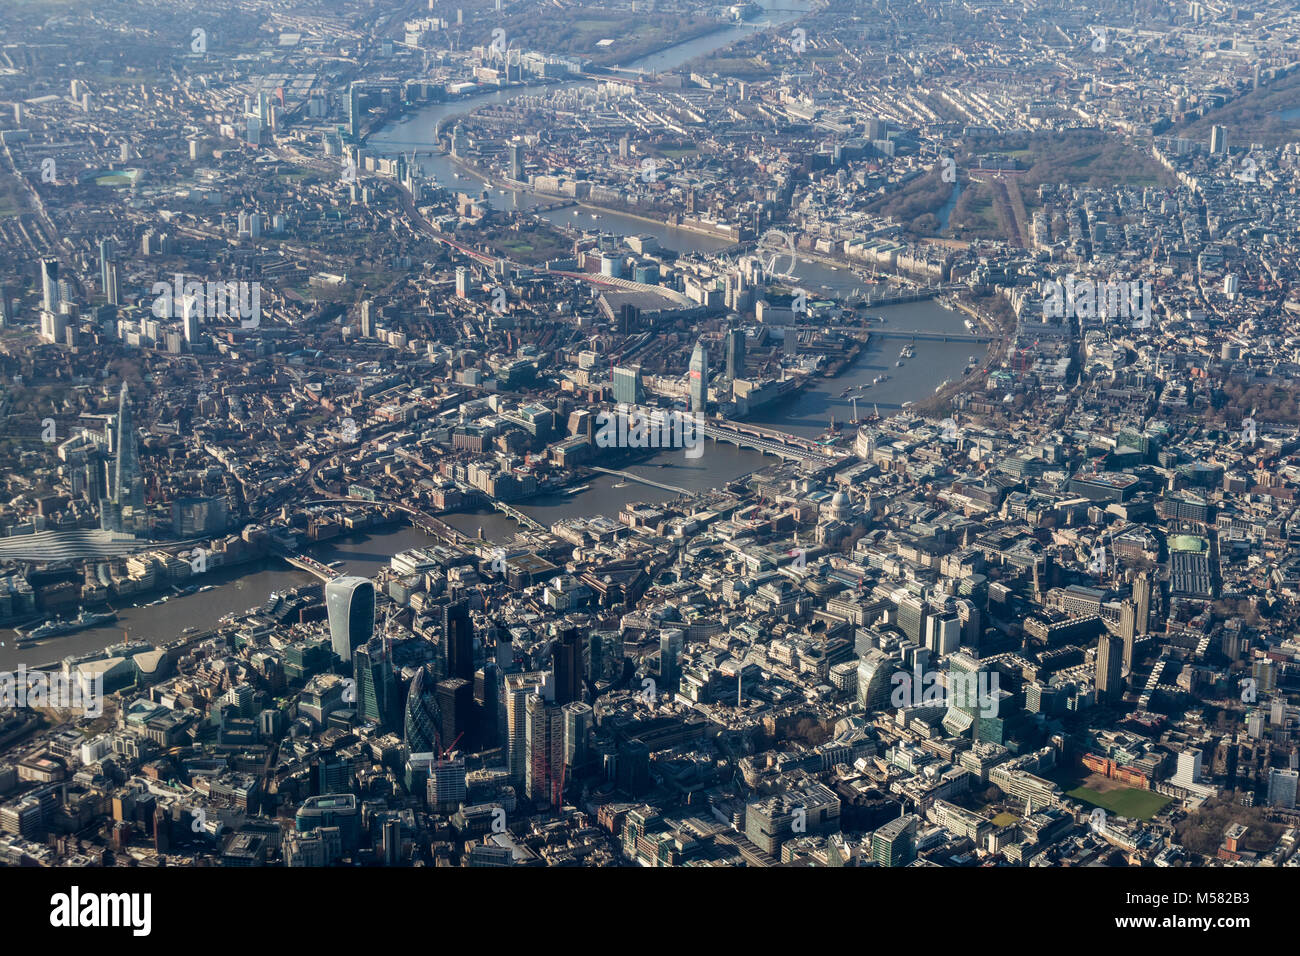 Aerial view of central London looking west along the Thames from the north. Stock Photo